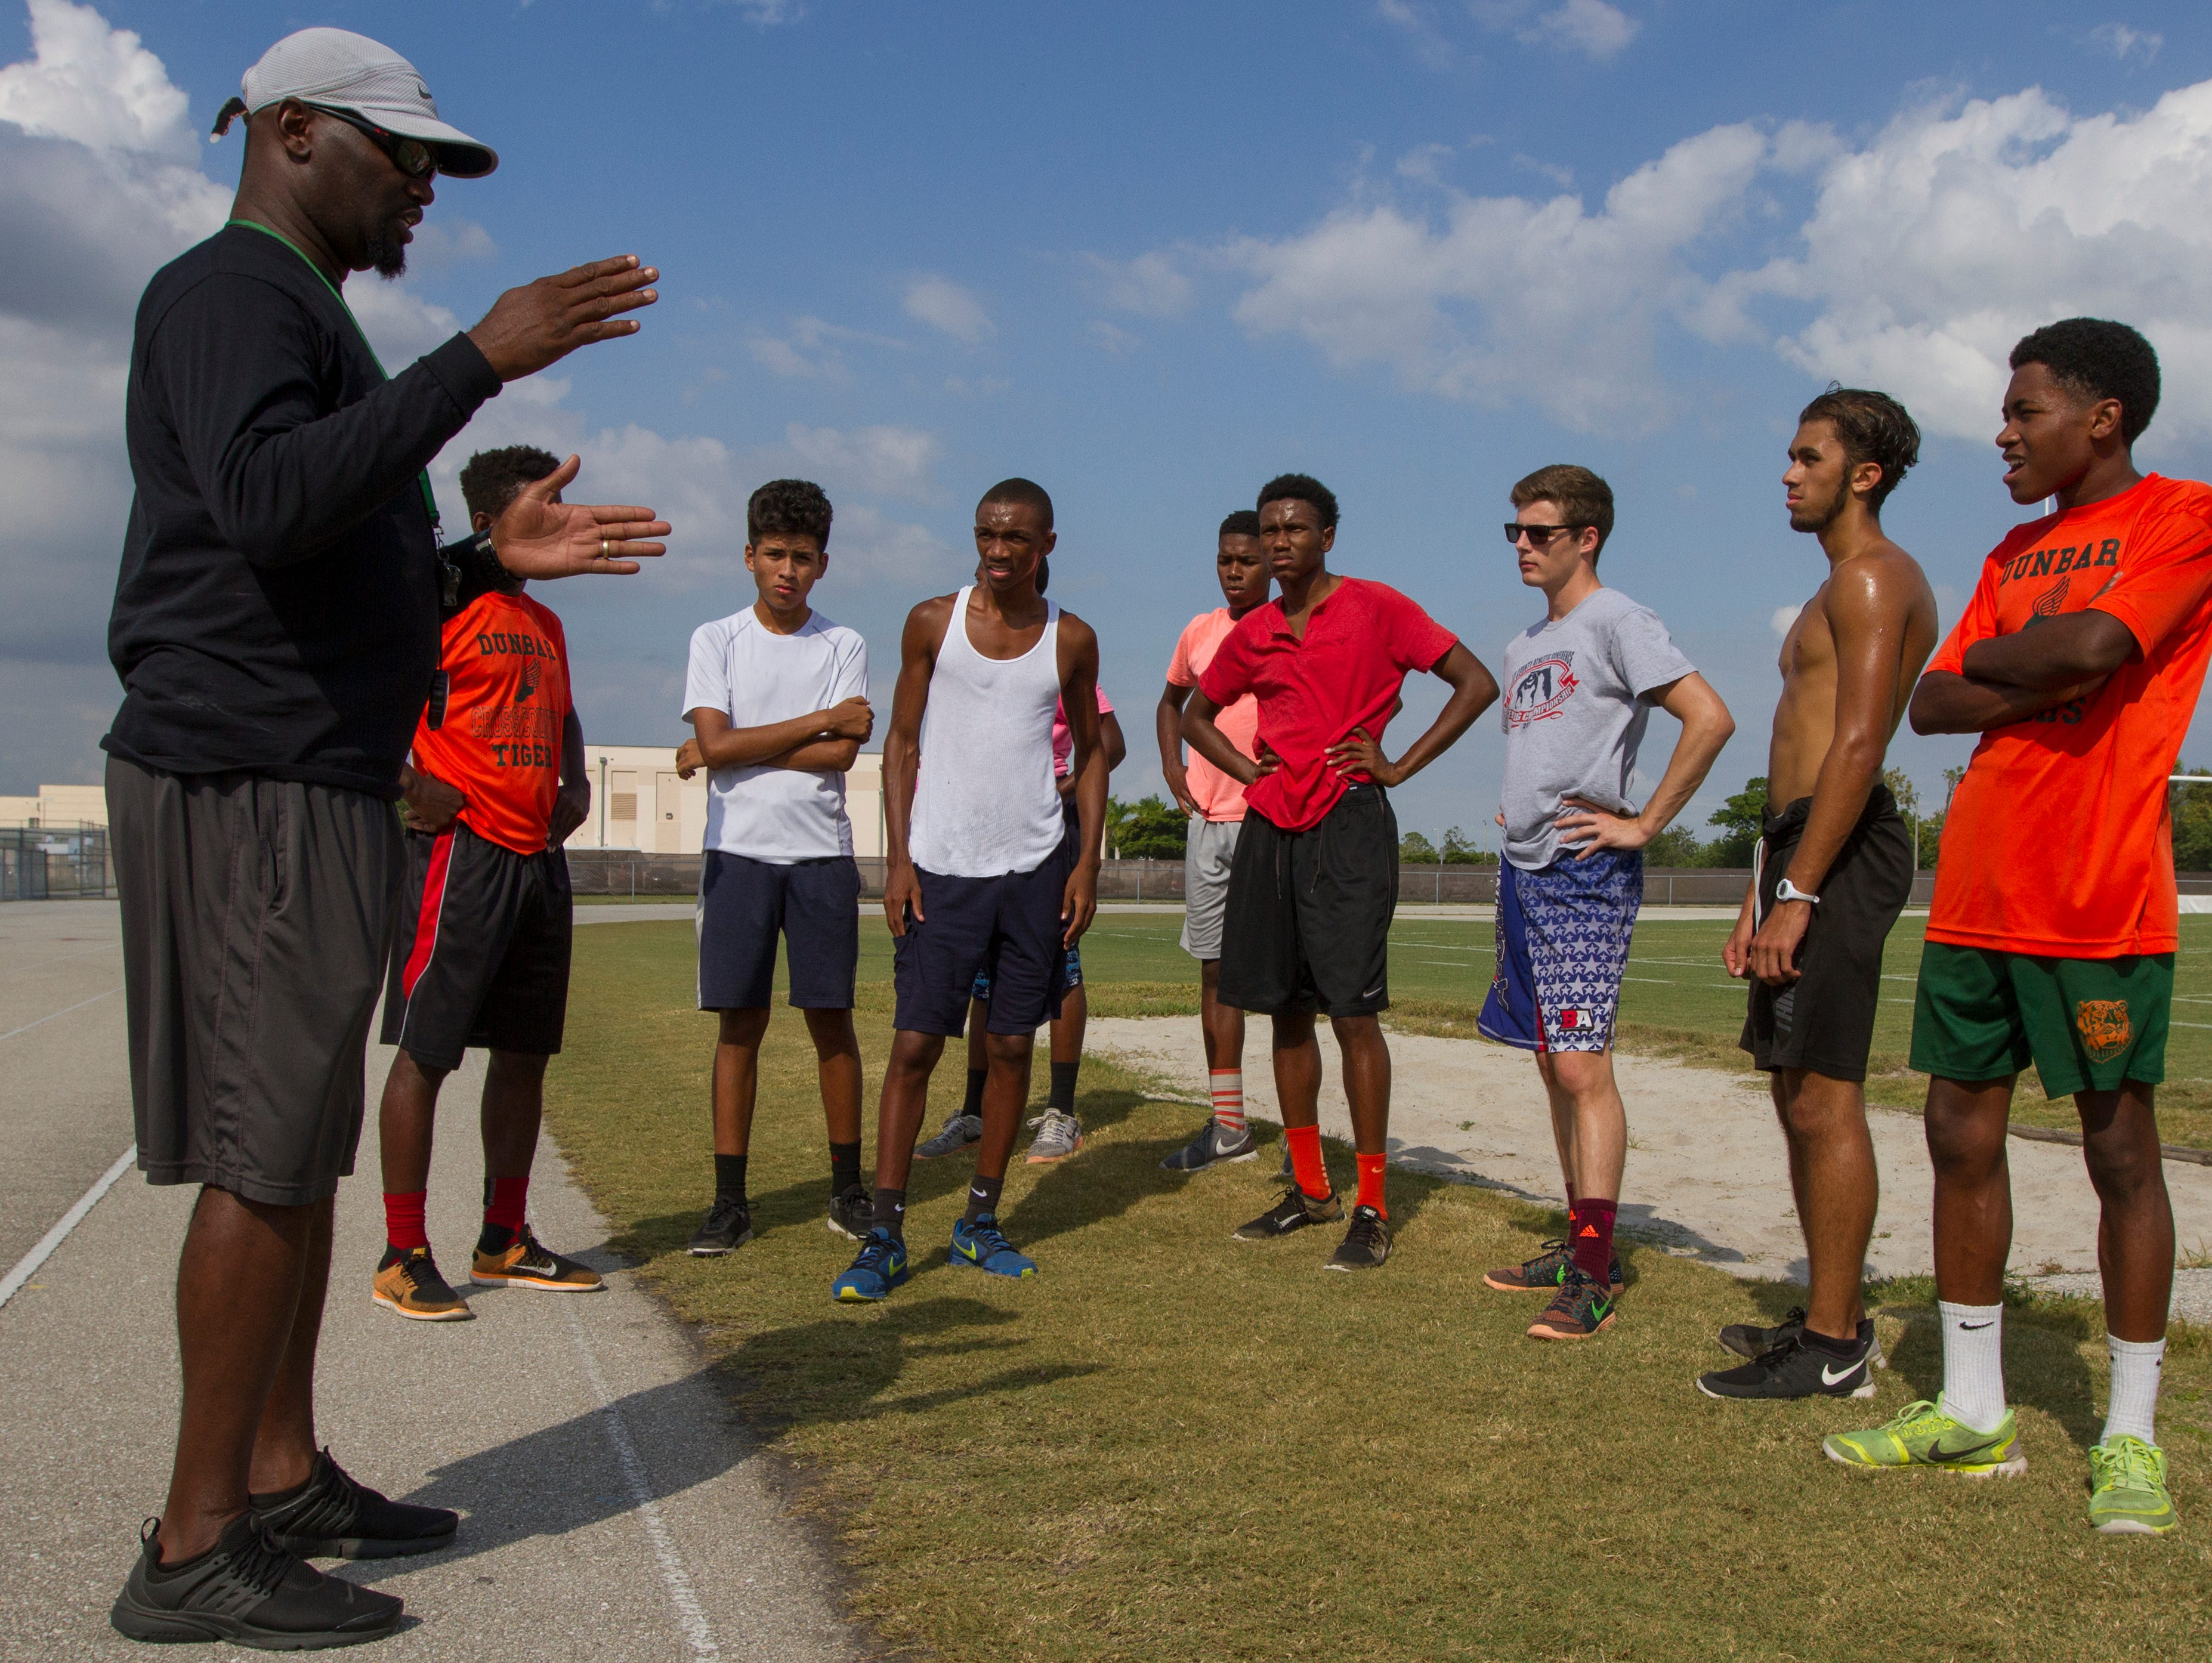 Cross country coach Guy Thomas,left, works with members of his Dunbar High School cross country team Wednesday, November 2, in Fort Myers. The team has qualified for its first state championship in school history.